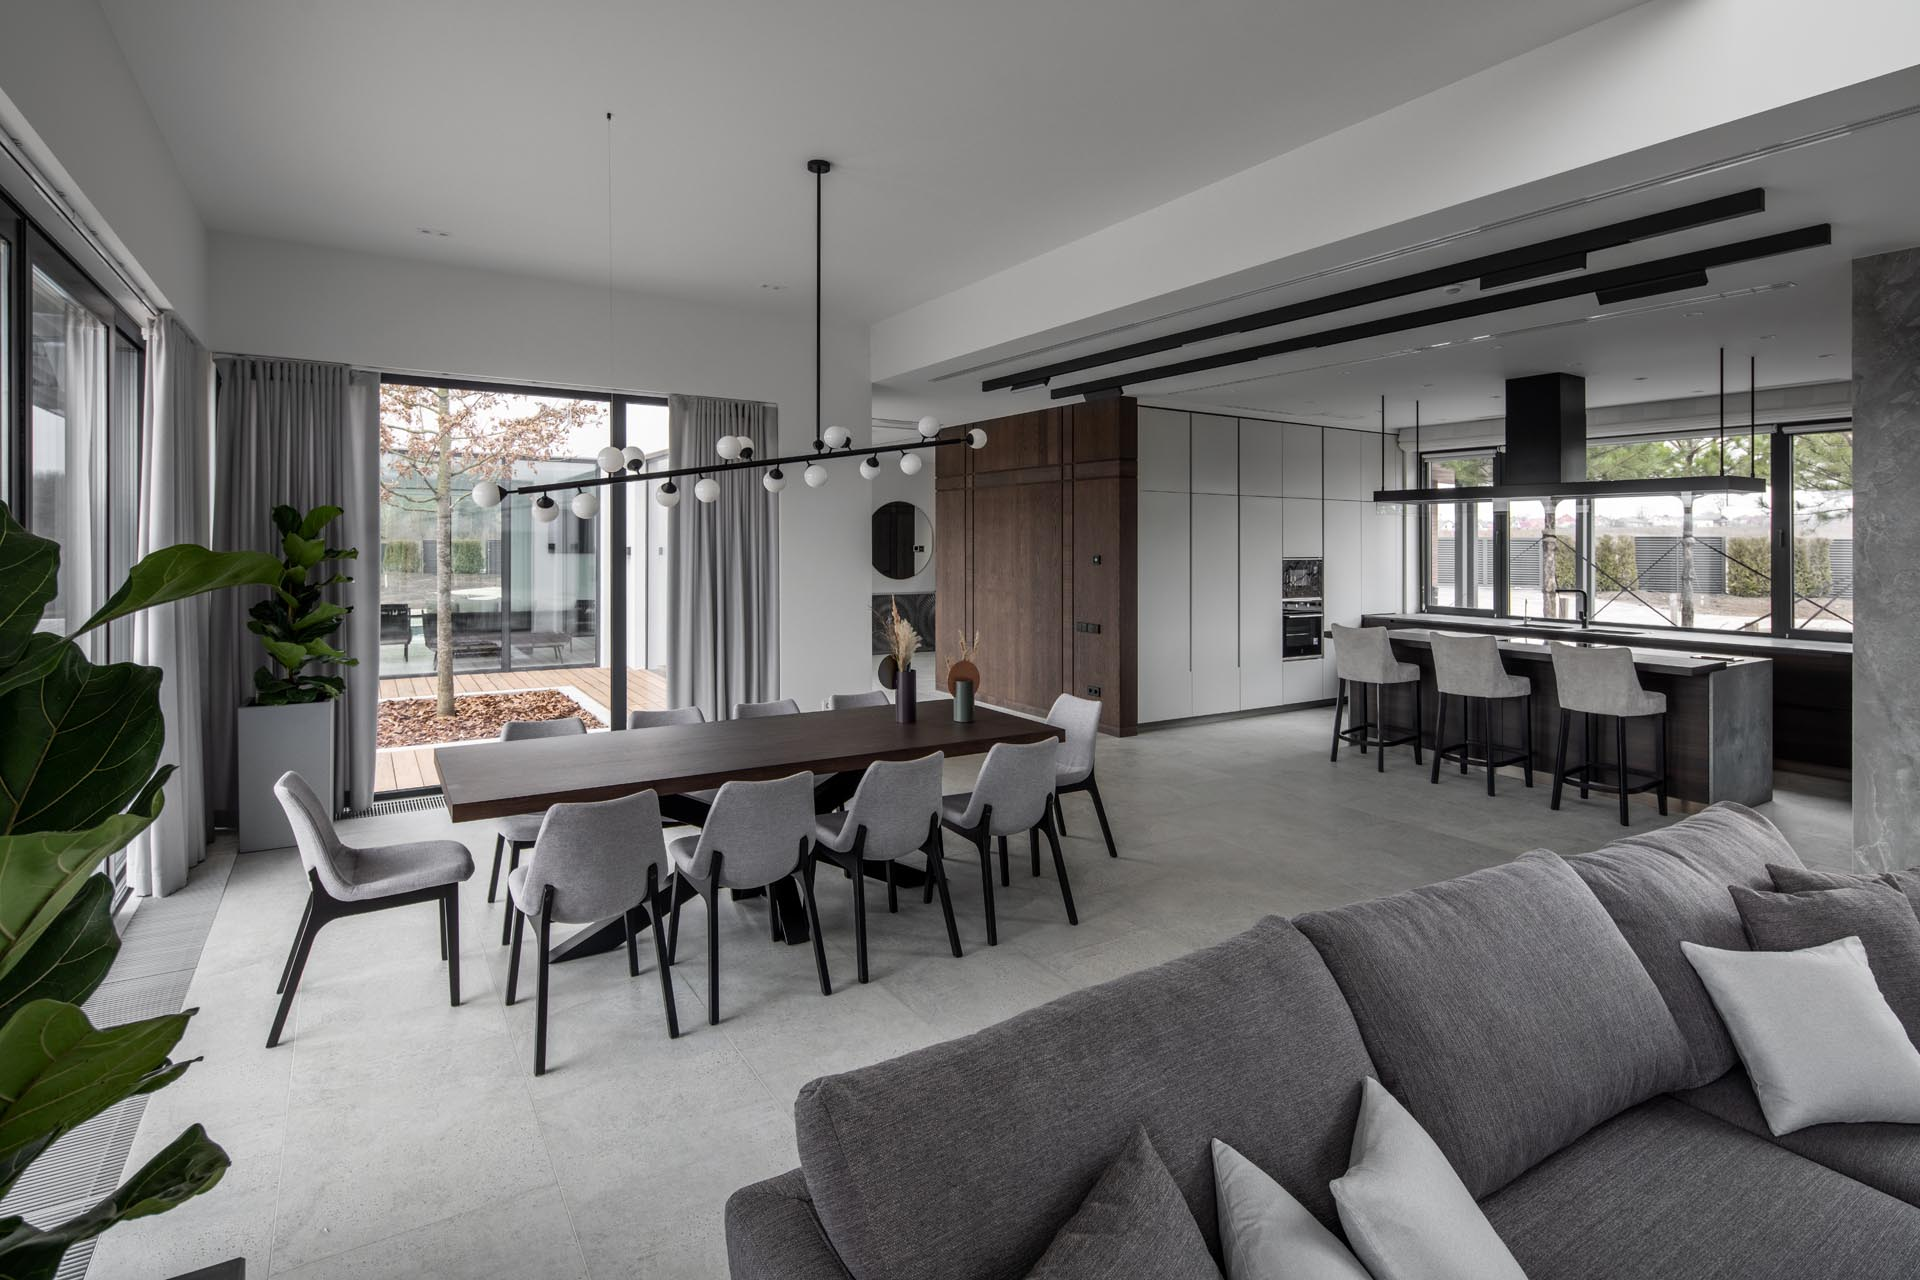 Modern open plan interior with a dining room anchored by a unique chandelier.